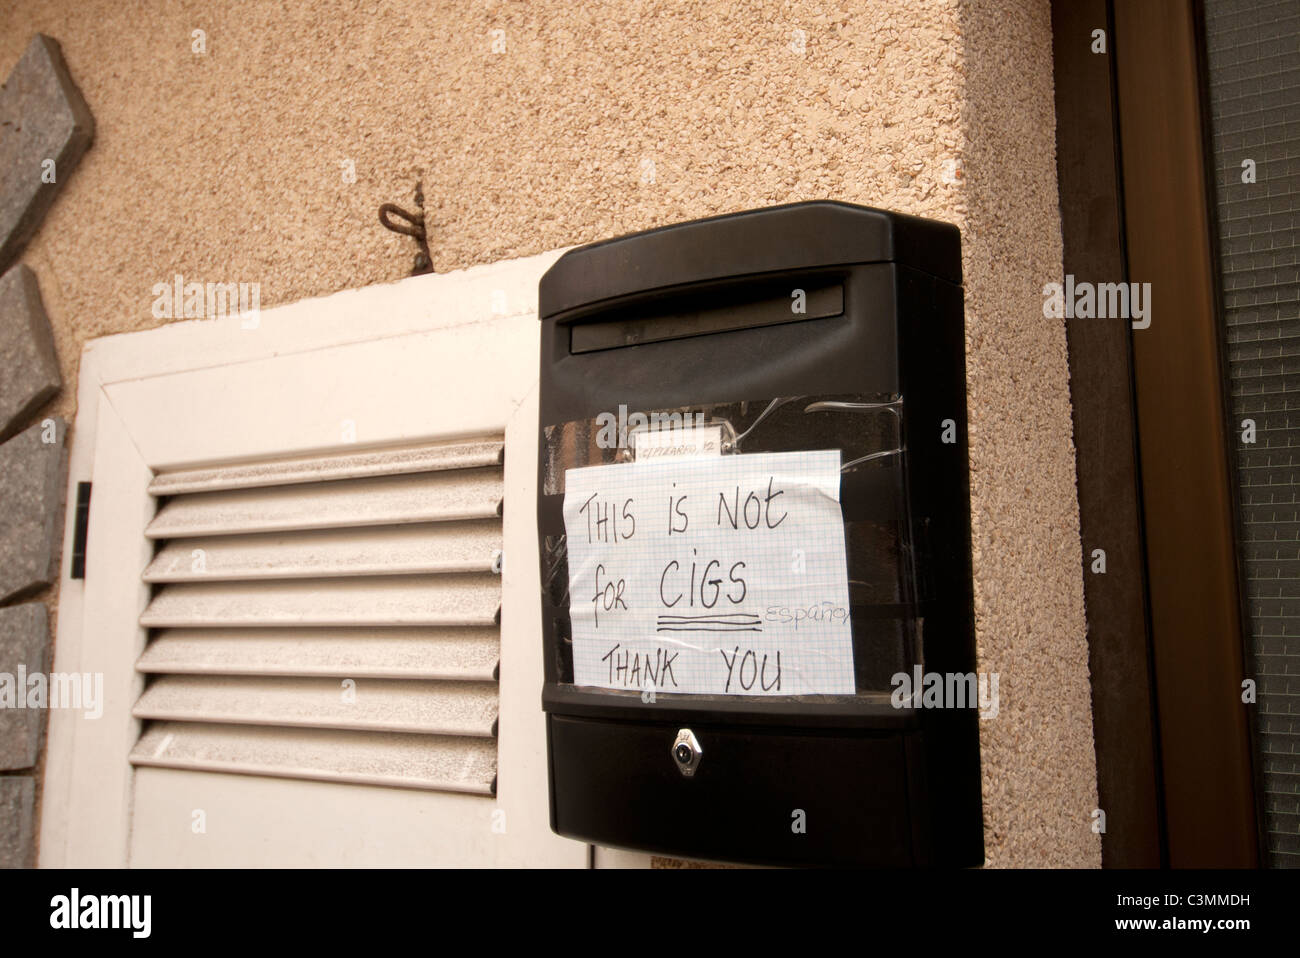 Notice on letter box This is not for cigs thank you - Stock Image